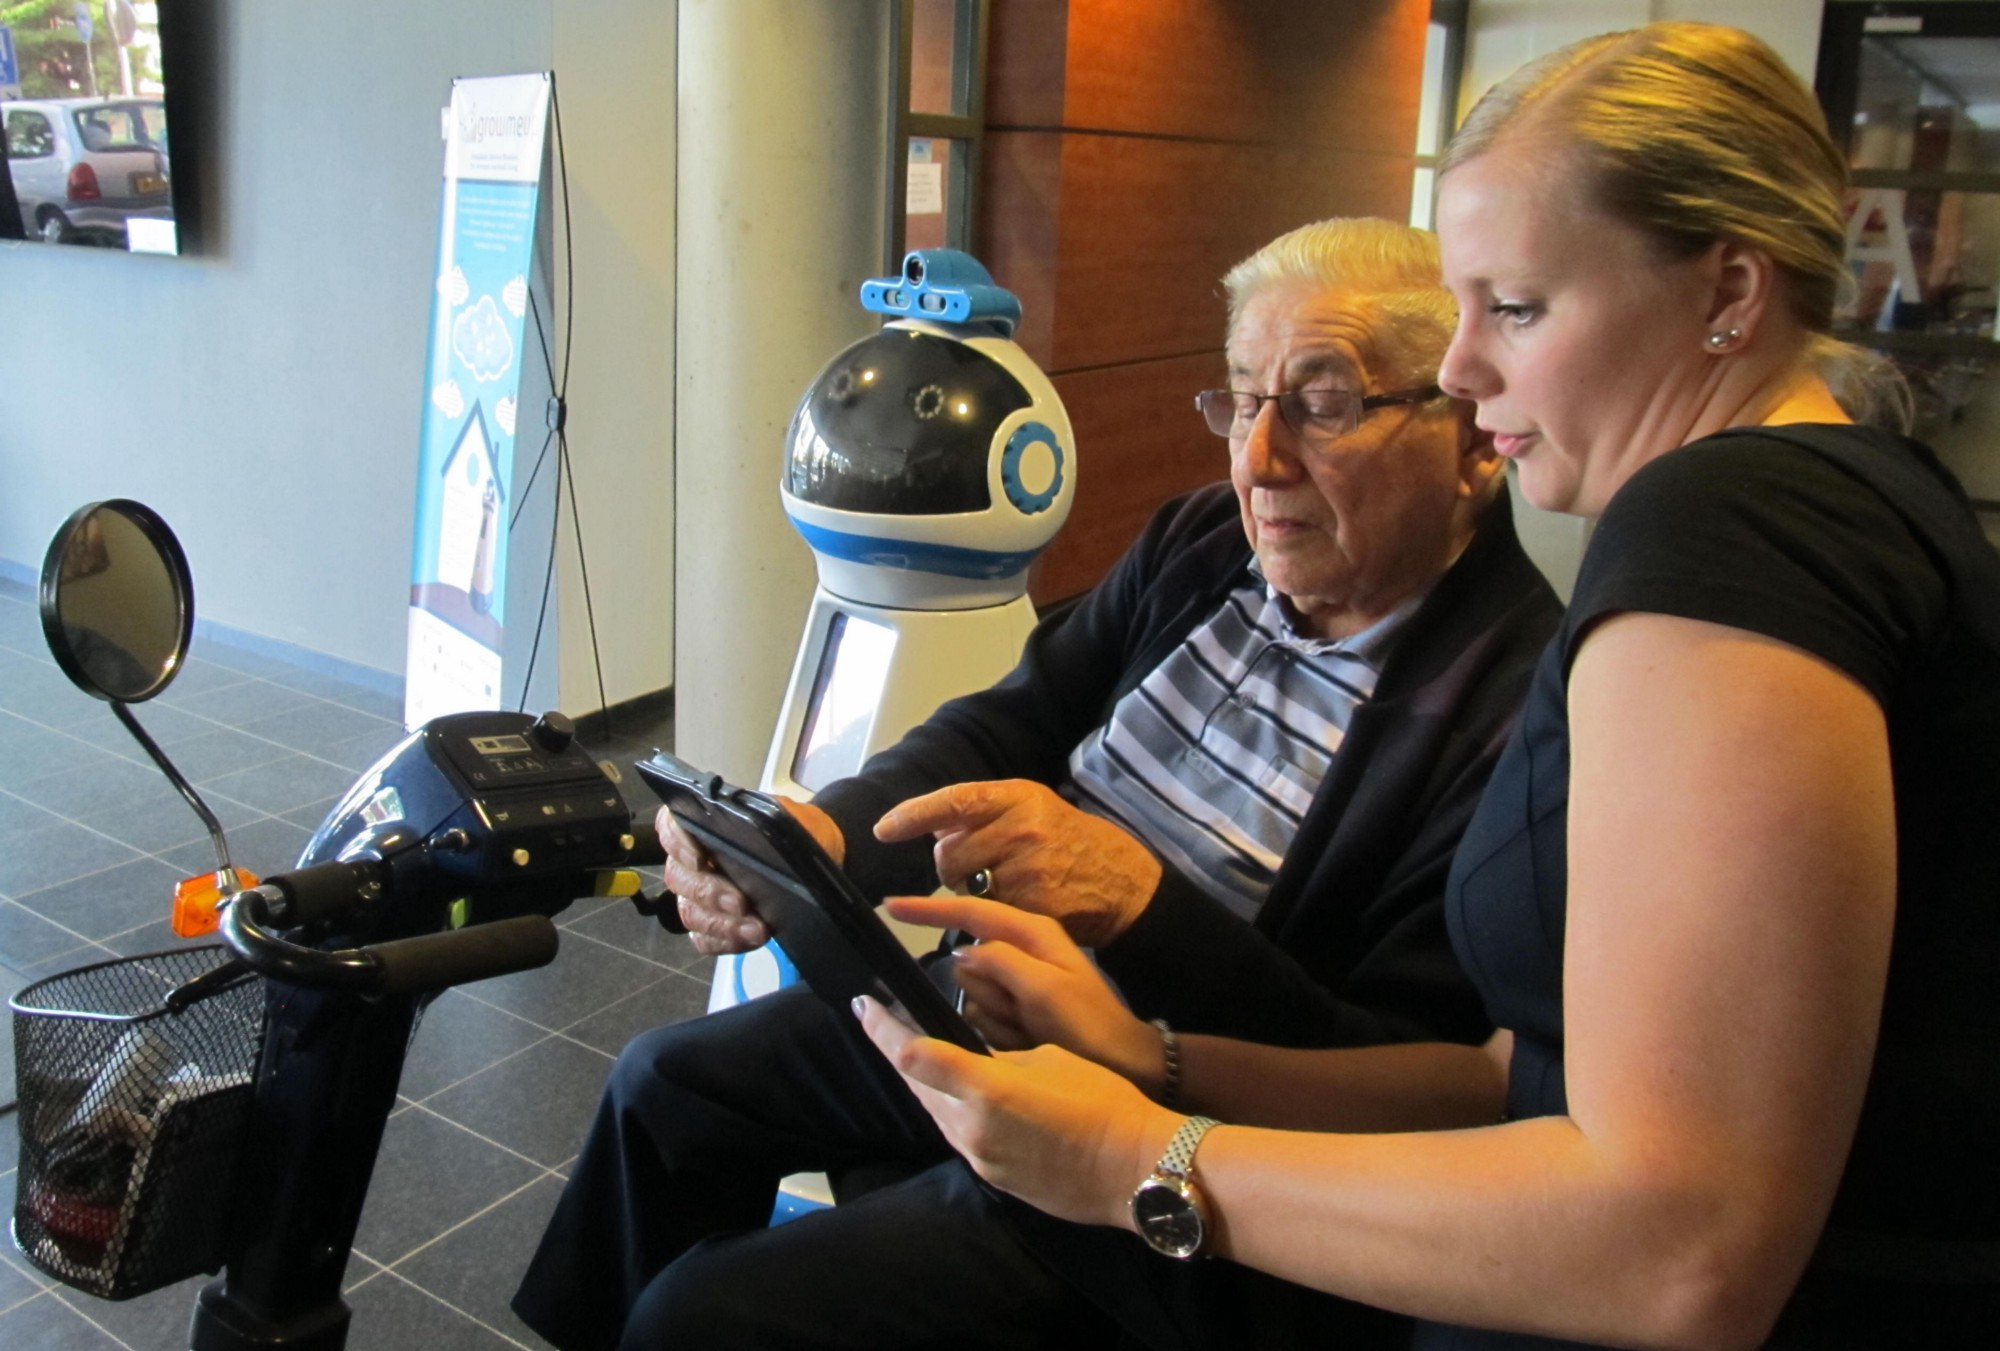 Humanoid robots under development can be programmed to detect changes in an elderly person's preferences and habits. Image credit: GrowMeUp